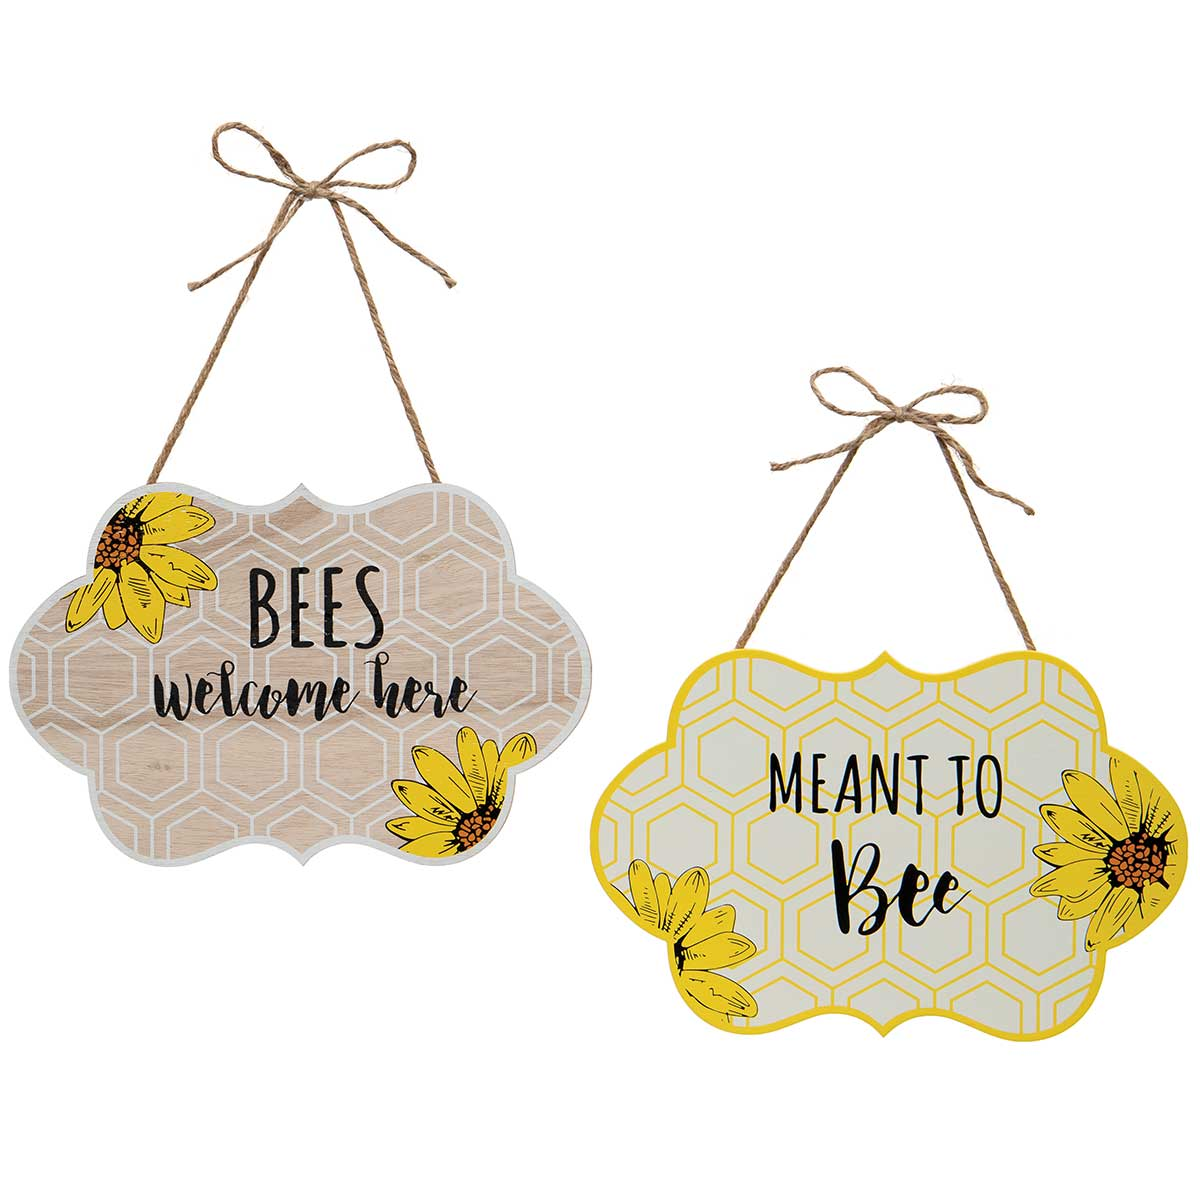 BEES WELCOME HERE/MEANT TO BEE WOODEN BEE WALL PLAQUE